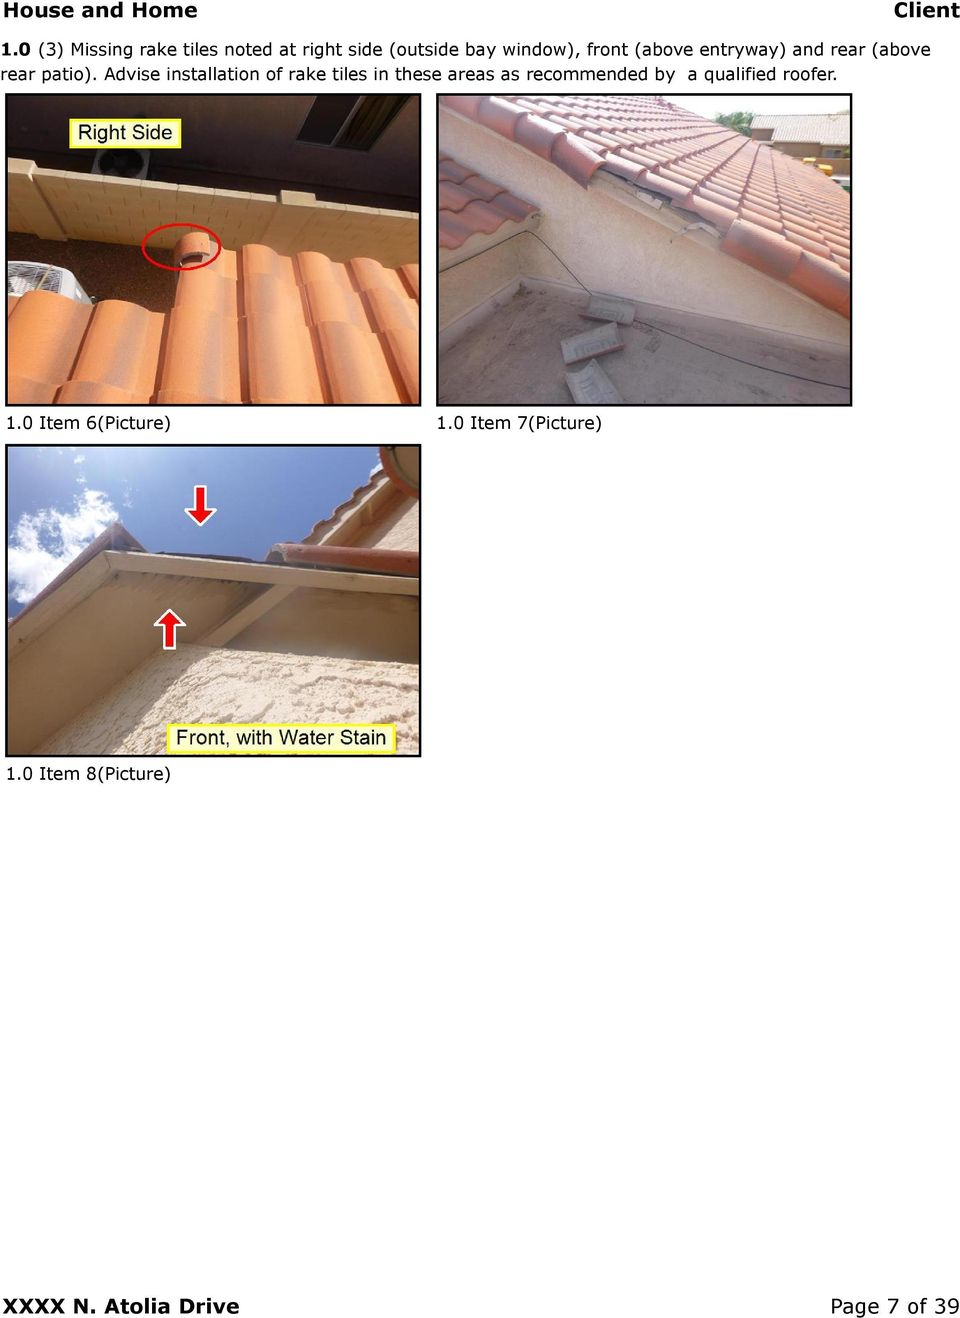 Advise installation of rake tiles in these areas as recommended by a